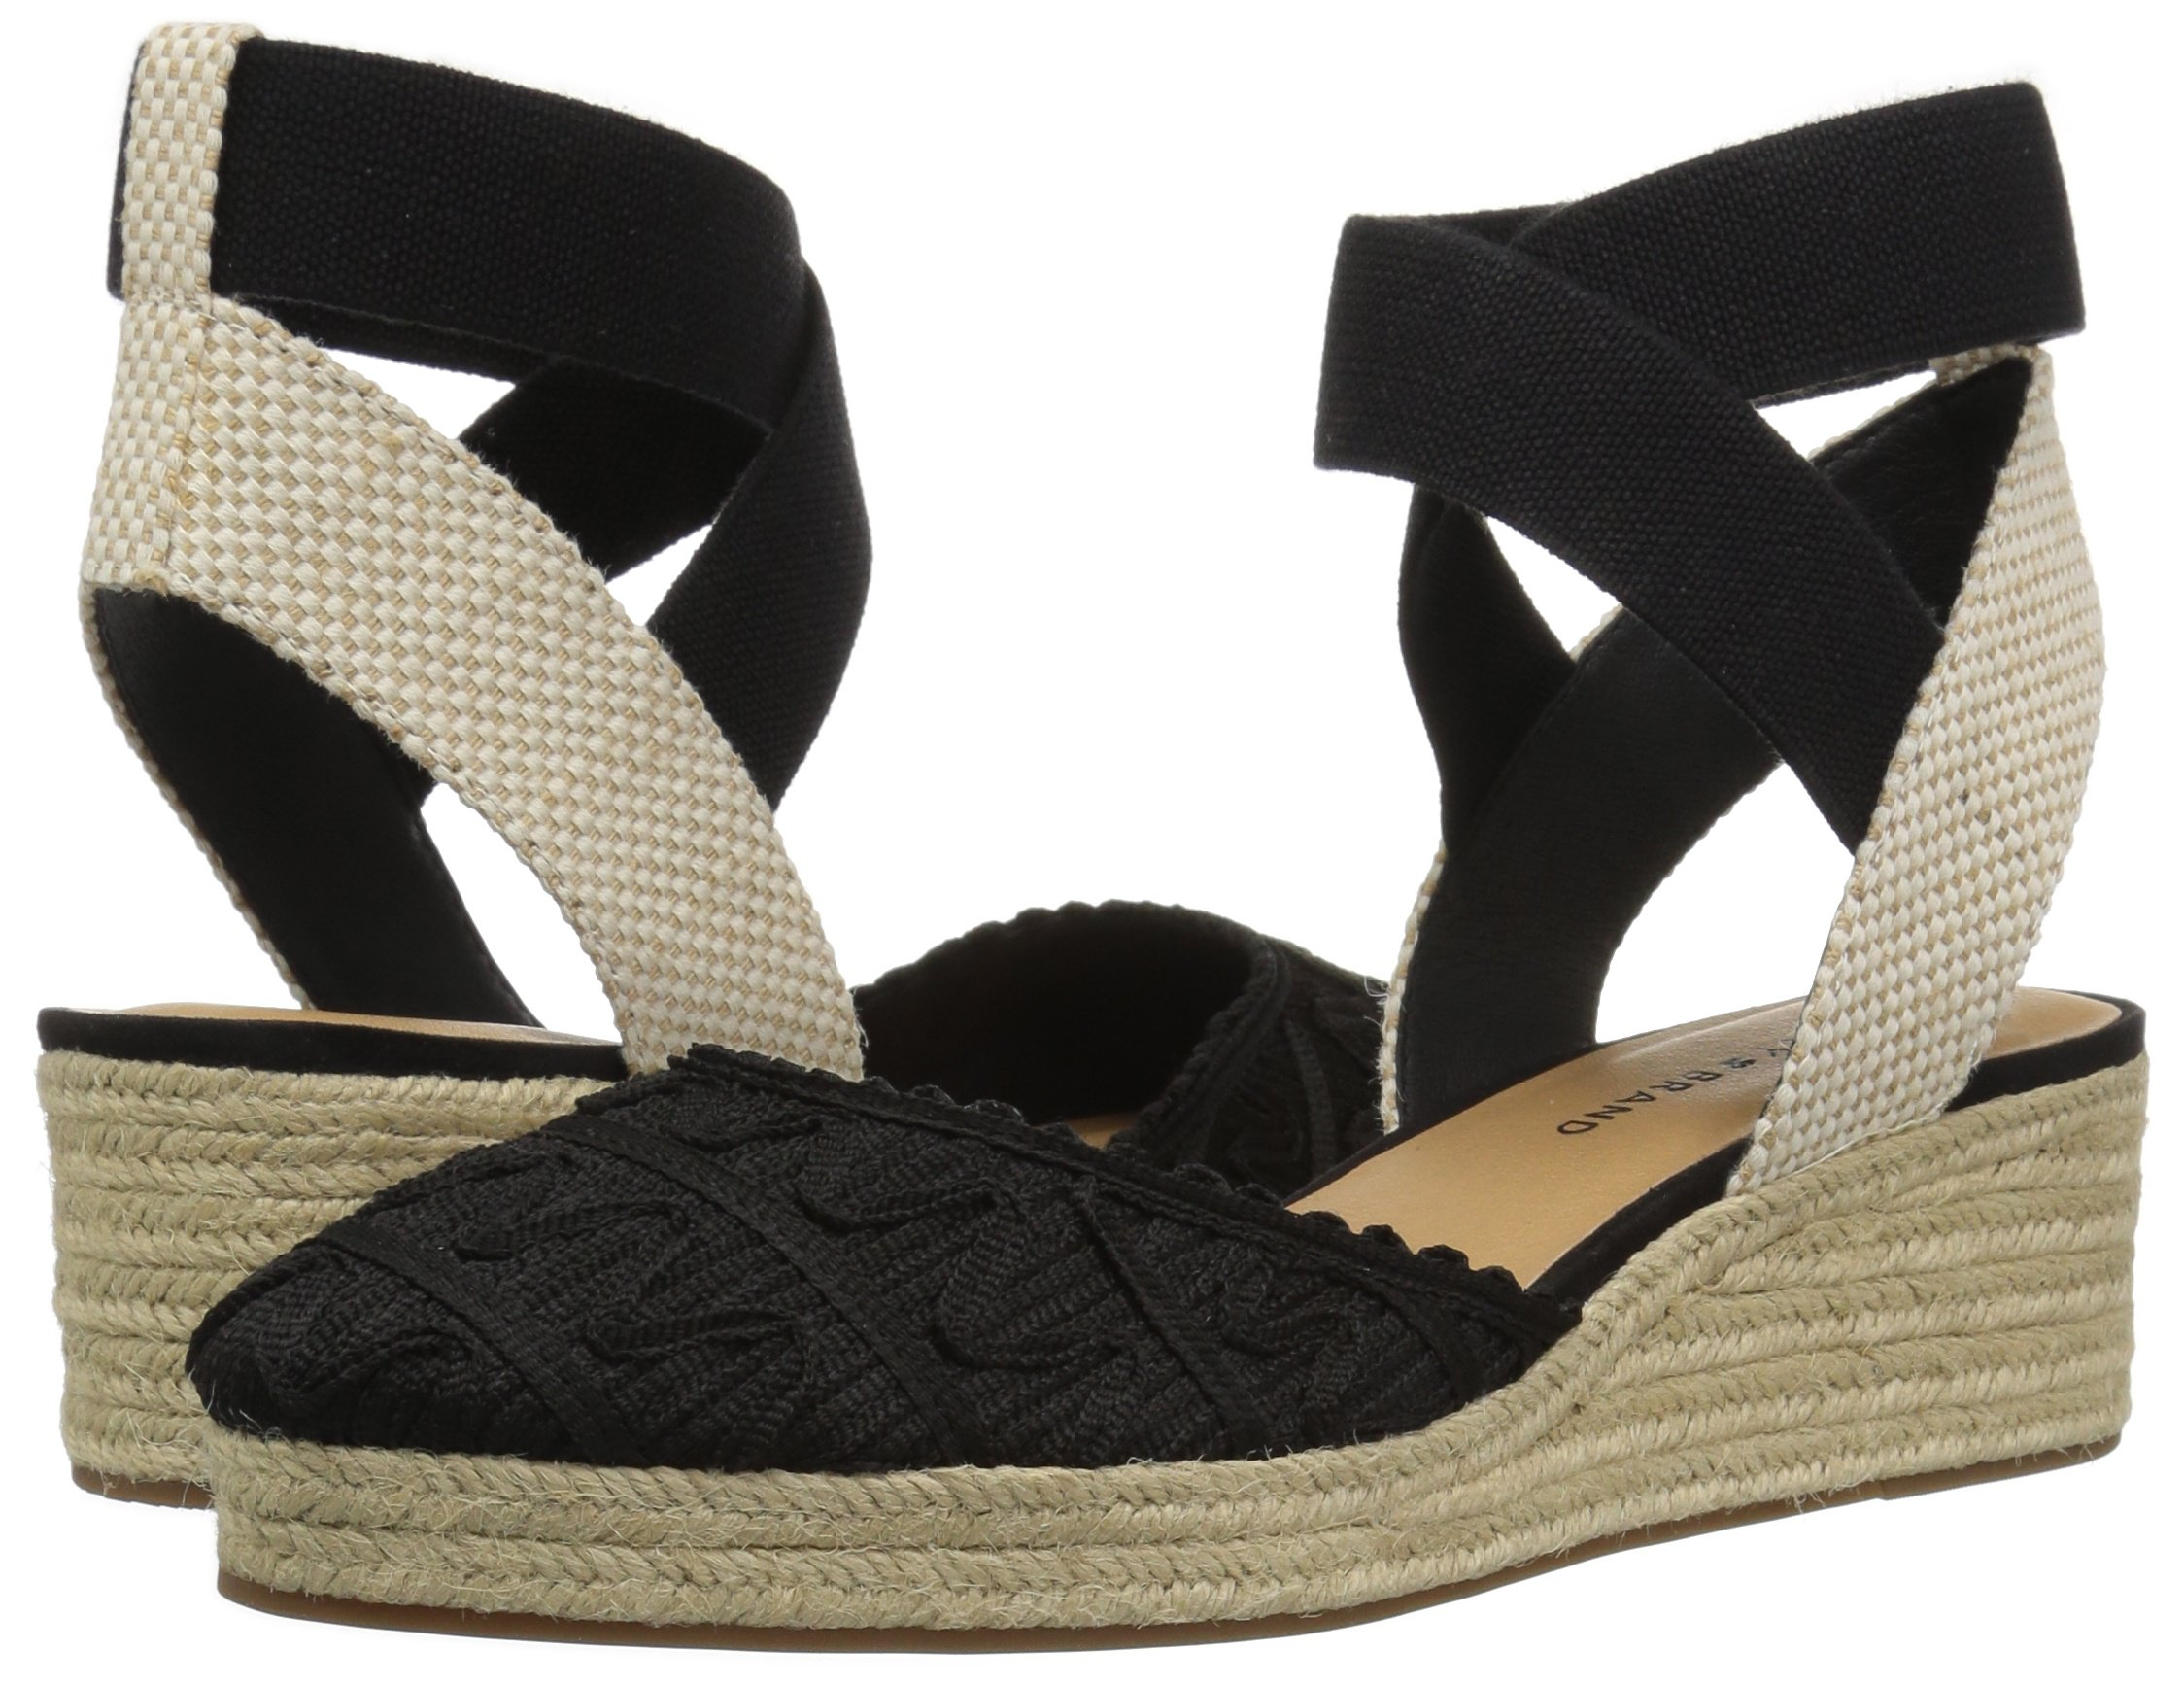 Lucky Brand Women's Luvinia Pump, Black, 7 M US by Lucky Brand (Image #5)